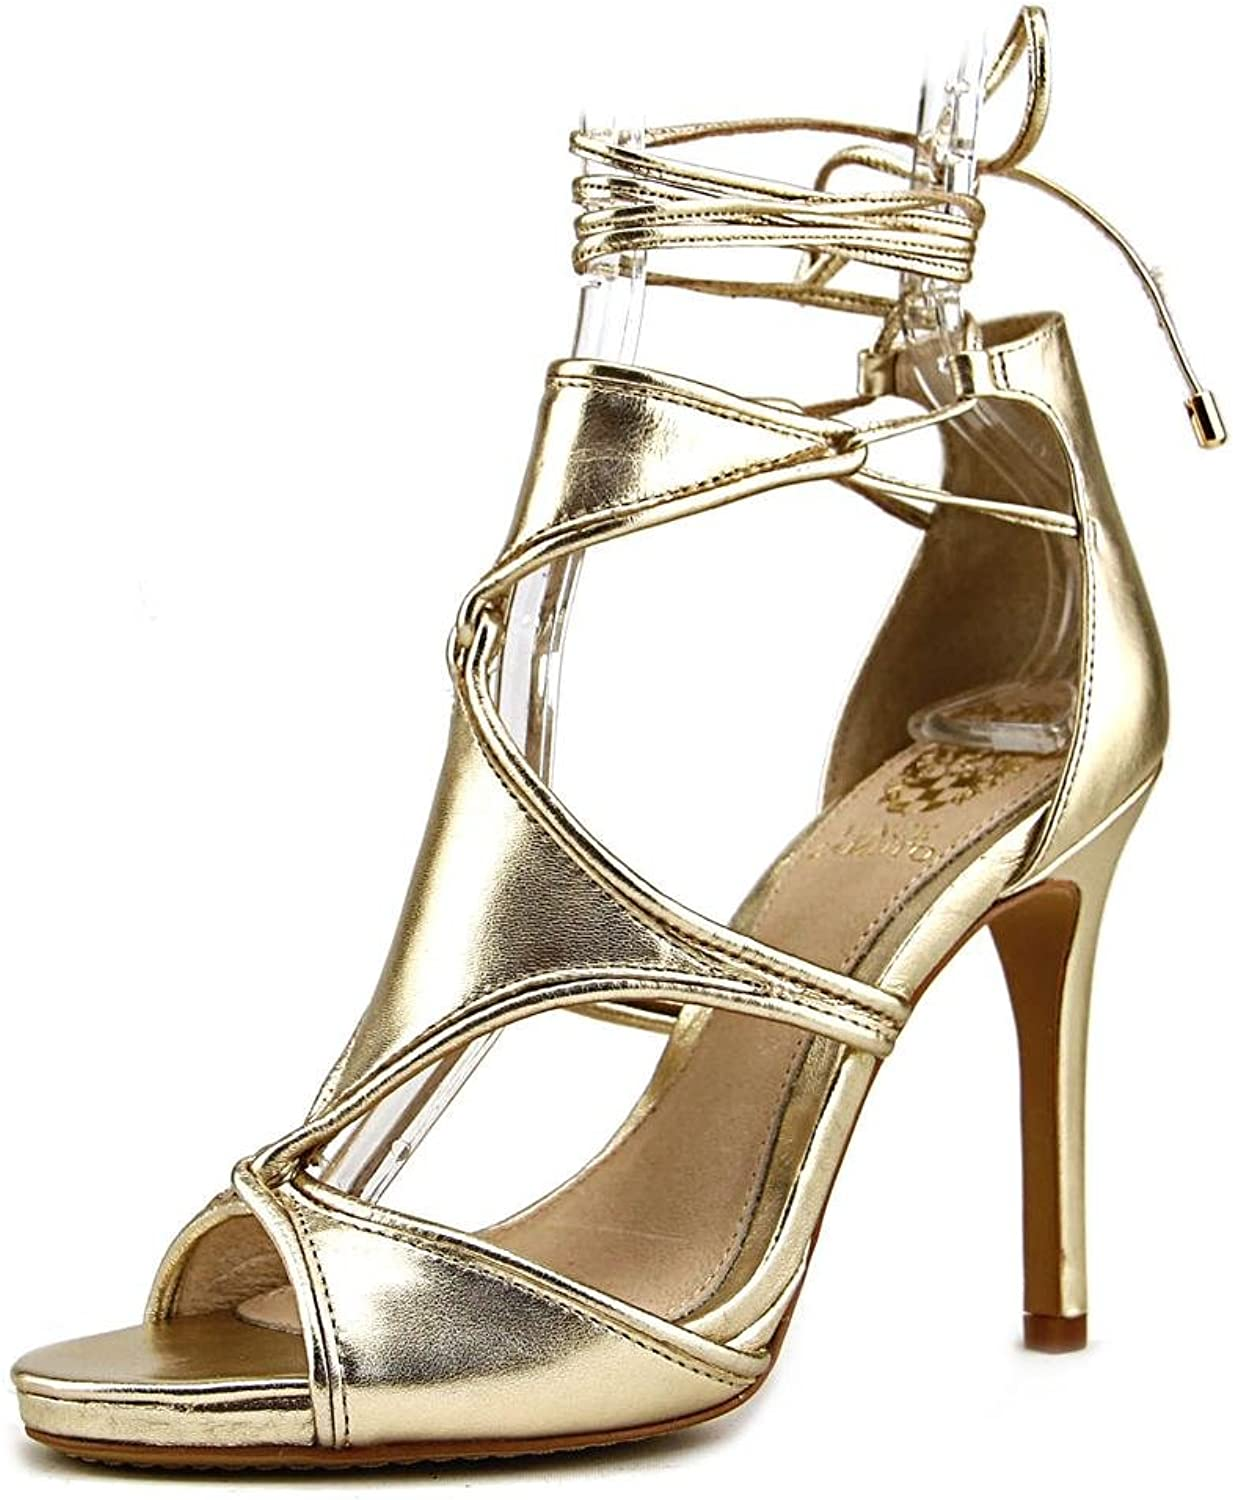 Vince Camuto Rae Women US 6.5 gold Sandals